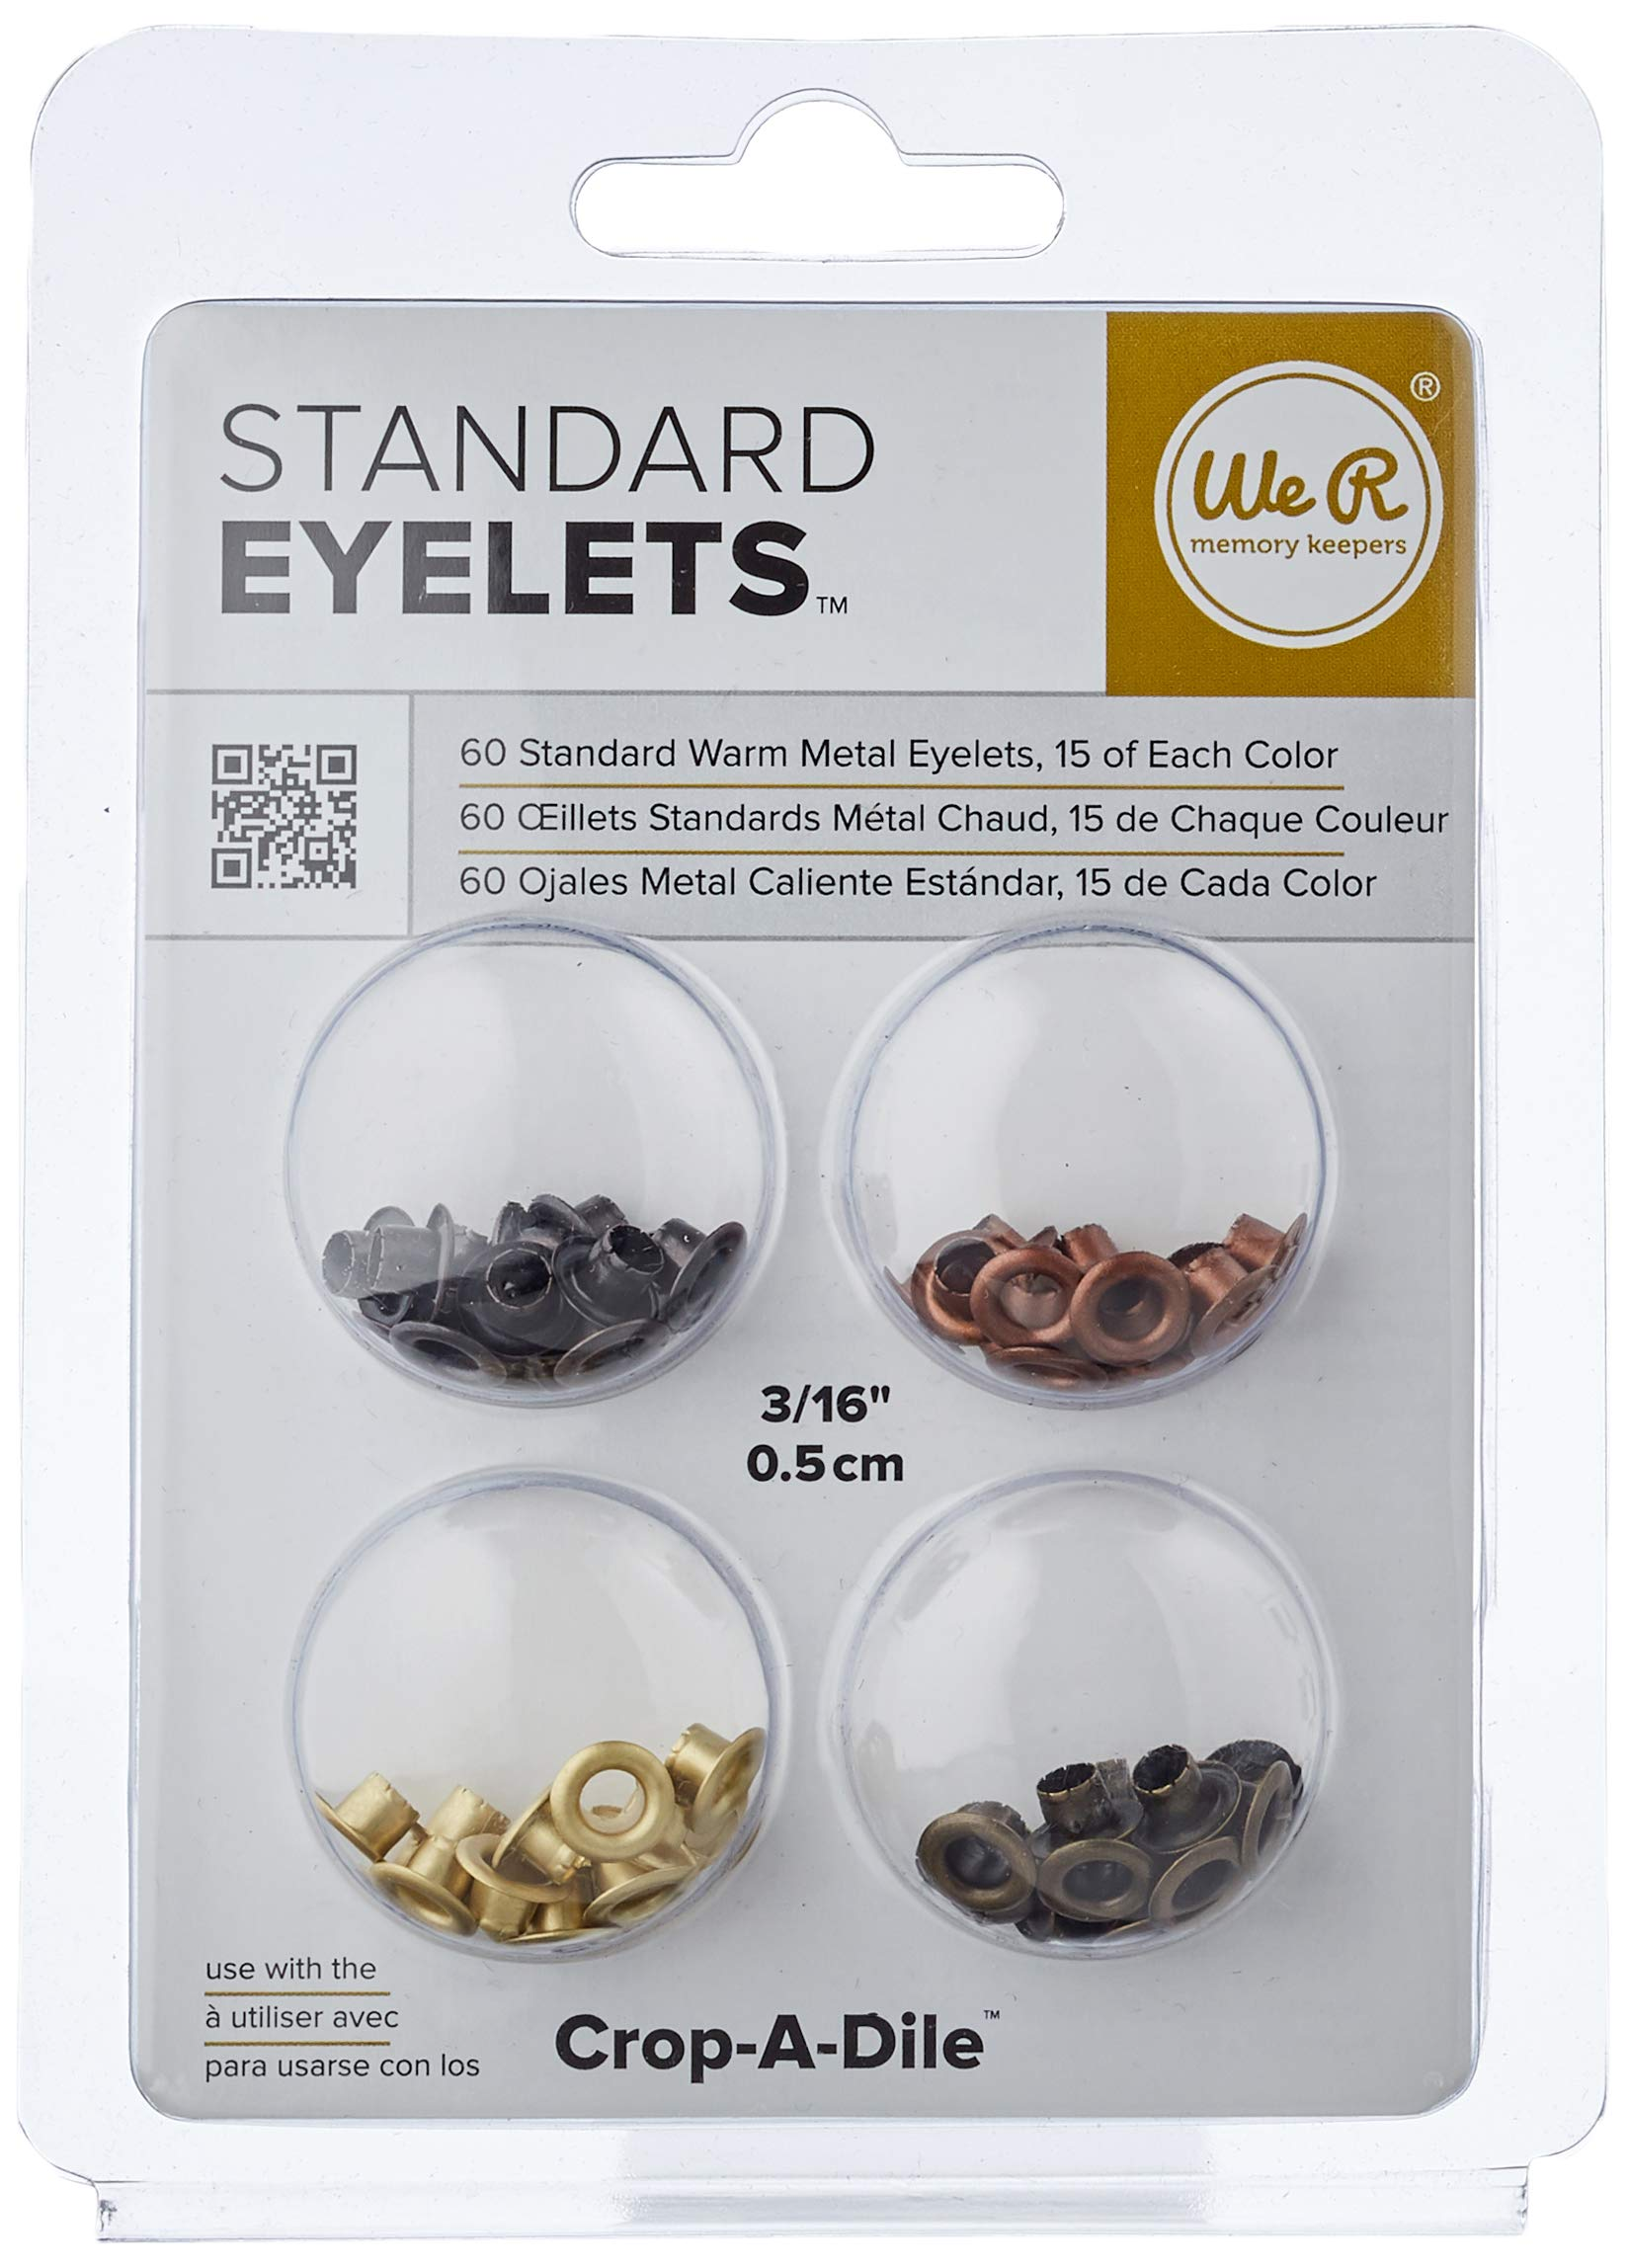 We R Memory Keepers Eyelets for Scrapbooking, Warm Metal, Standard (41583-1)                We R Memory Keepers 0633356631057 Board Punch Board & Punch-Tab                We R Memory Keepers Ring Page Protectors, 12 by 12-Inch, 50-Pack                Mini Tool Kit & Magnetic Mat by We R Memory Keepers | Includes 6 x 8-inch magnetic mat, 6-inch ruler, precision tweezers, brad setter, art knife and 5-inch precision scissors                3-Pack - American Crafts 12-Inch by 12-Inch Page Protectors (10 pages per pack)